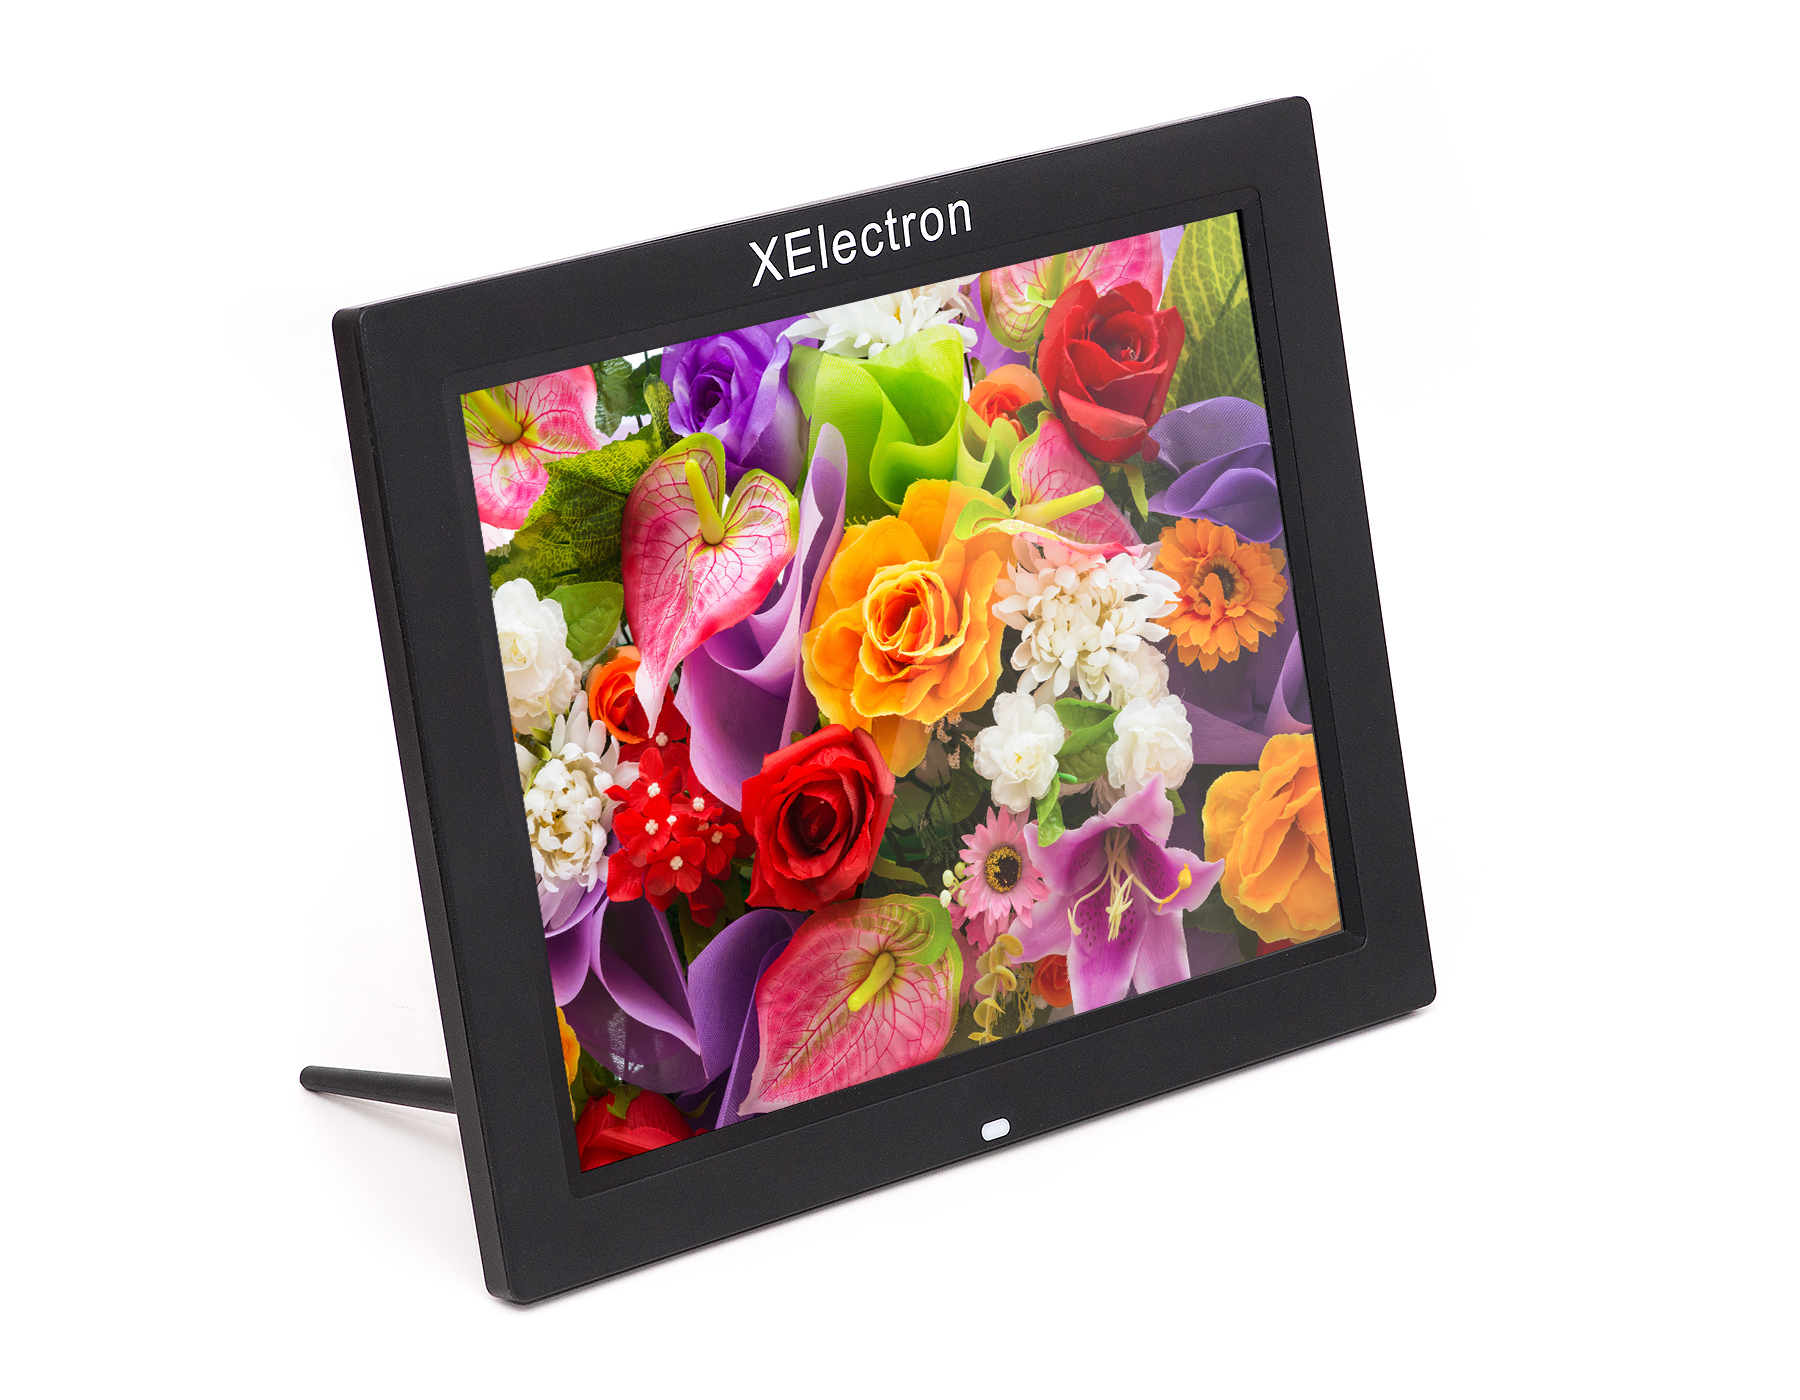 XElectron 15 Inch Digital Photo Frame with Remote | XElectron